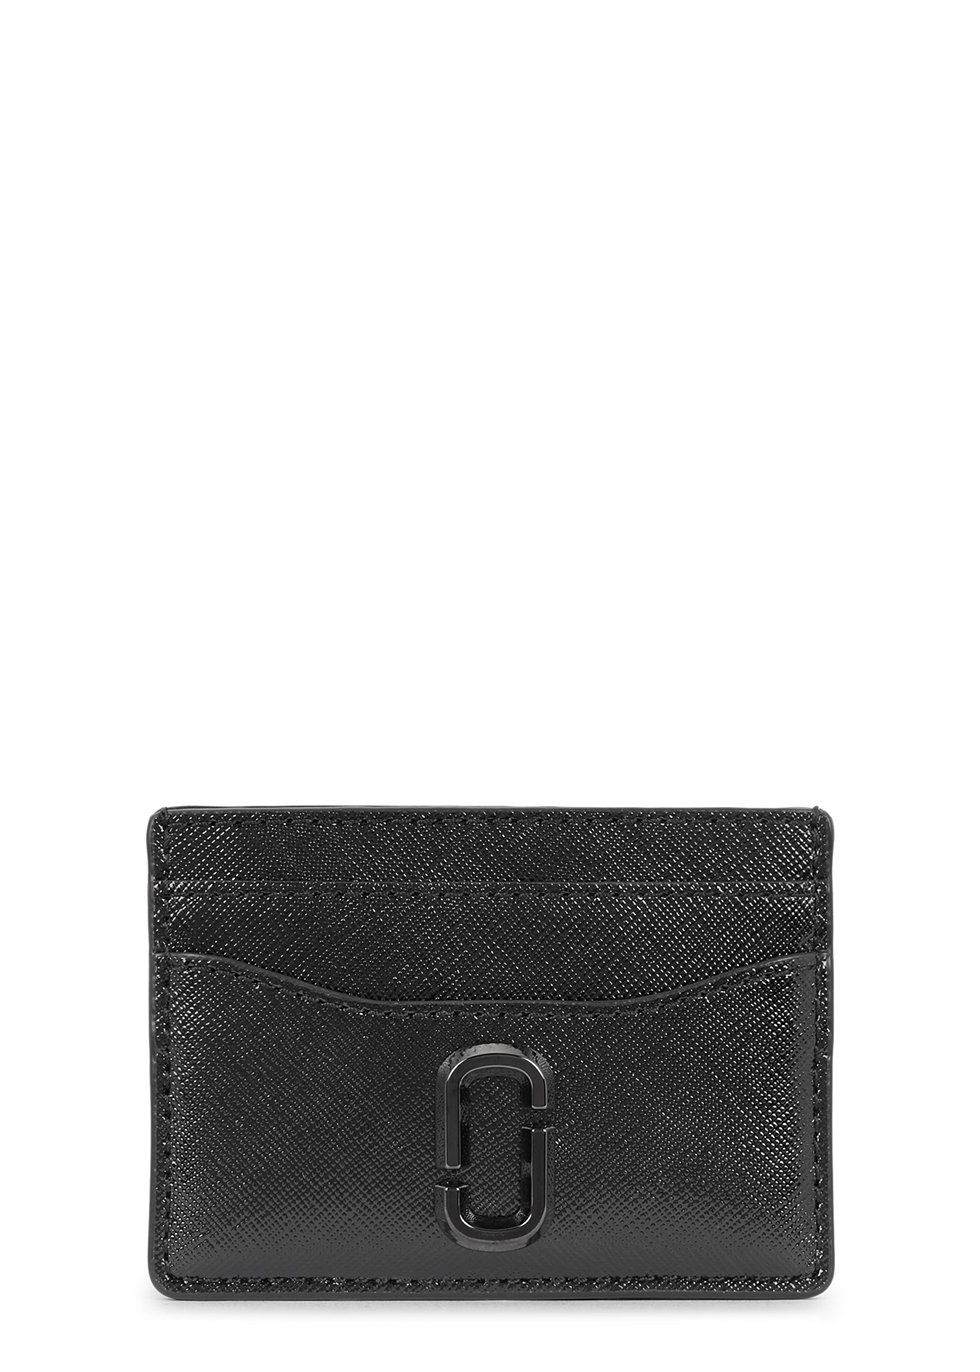 MARC JACOBS | Marc Jacobs Snapshot Leather Card Holder | Goxip